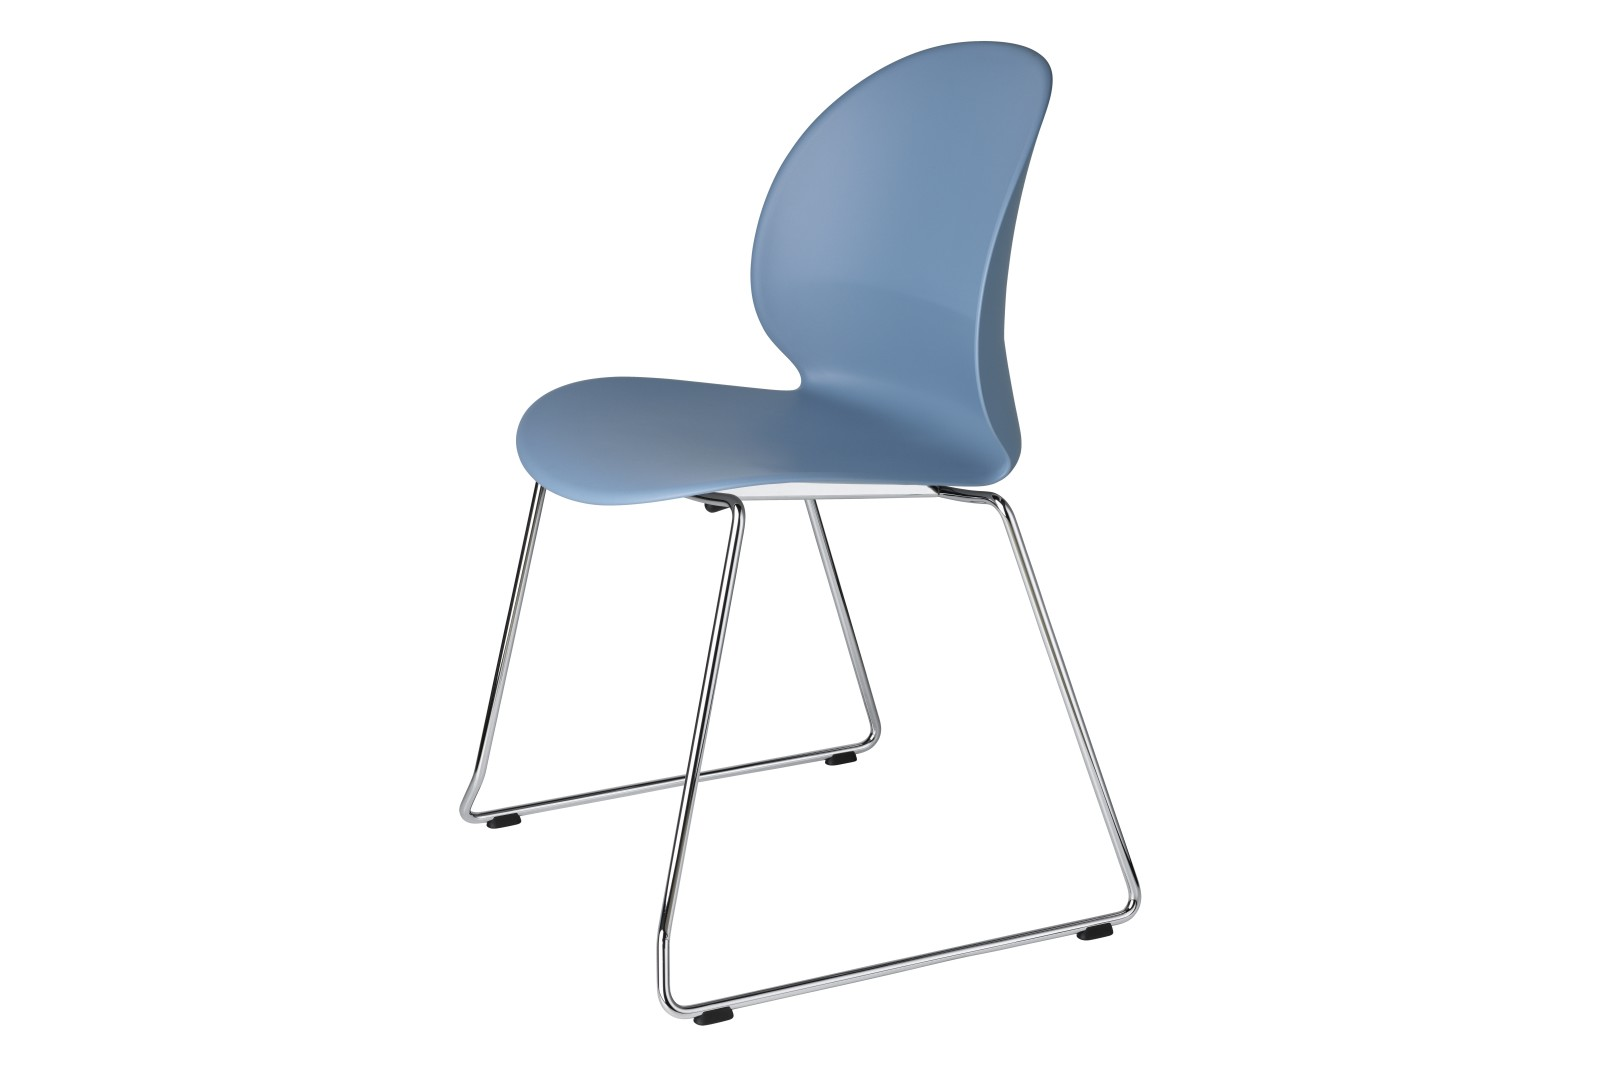 N02 Recycle Chair - Sled Base sled, light blue